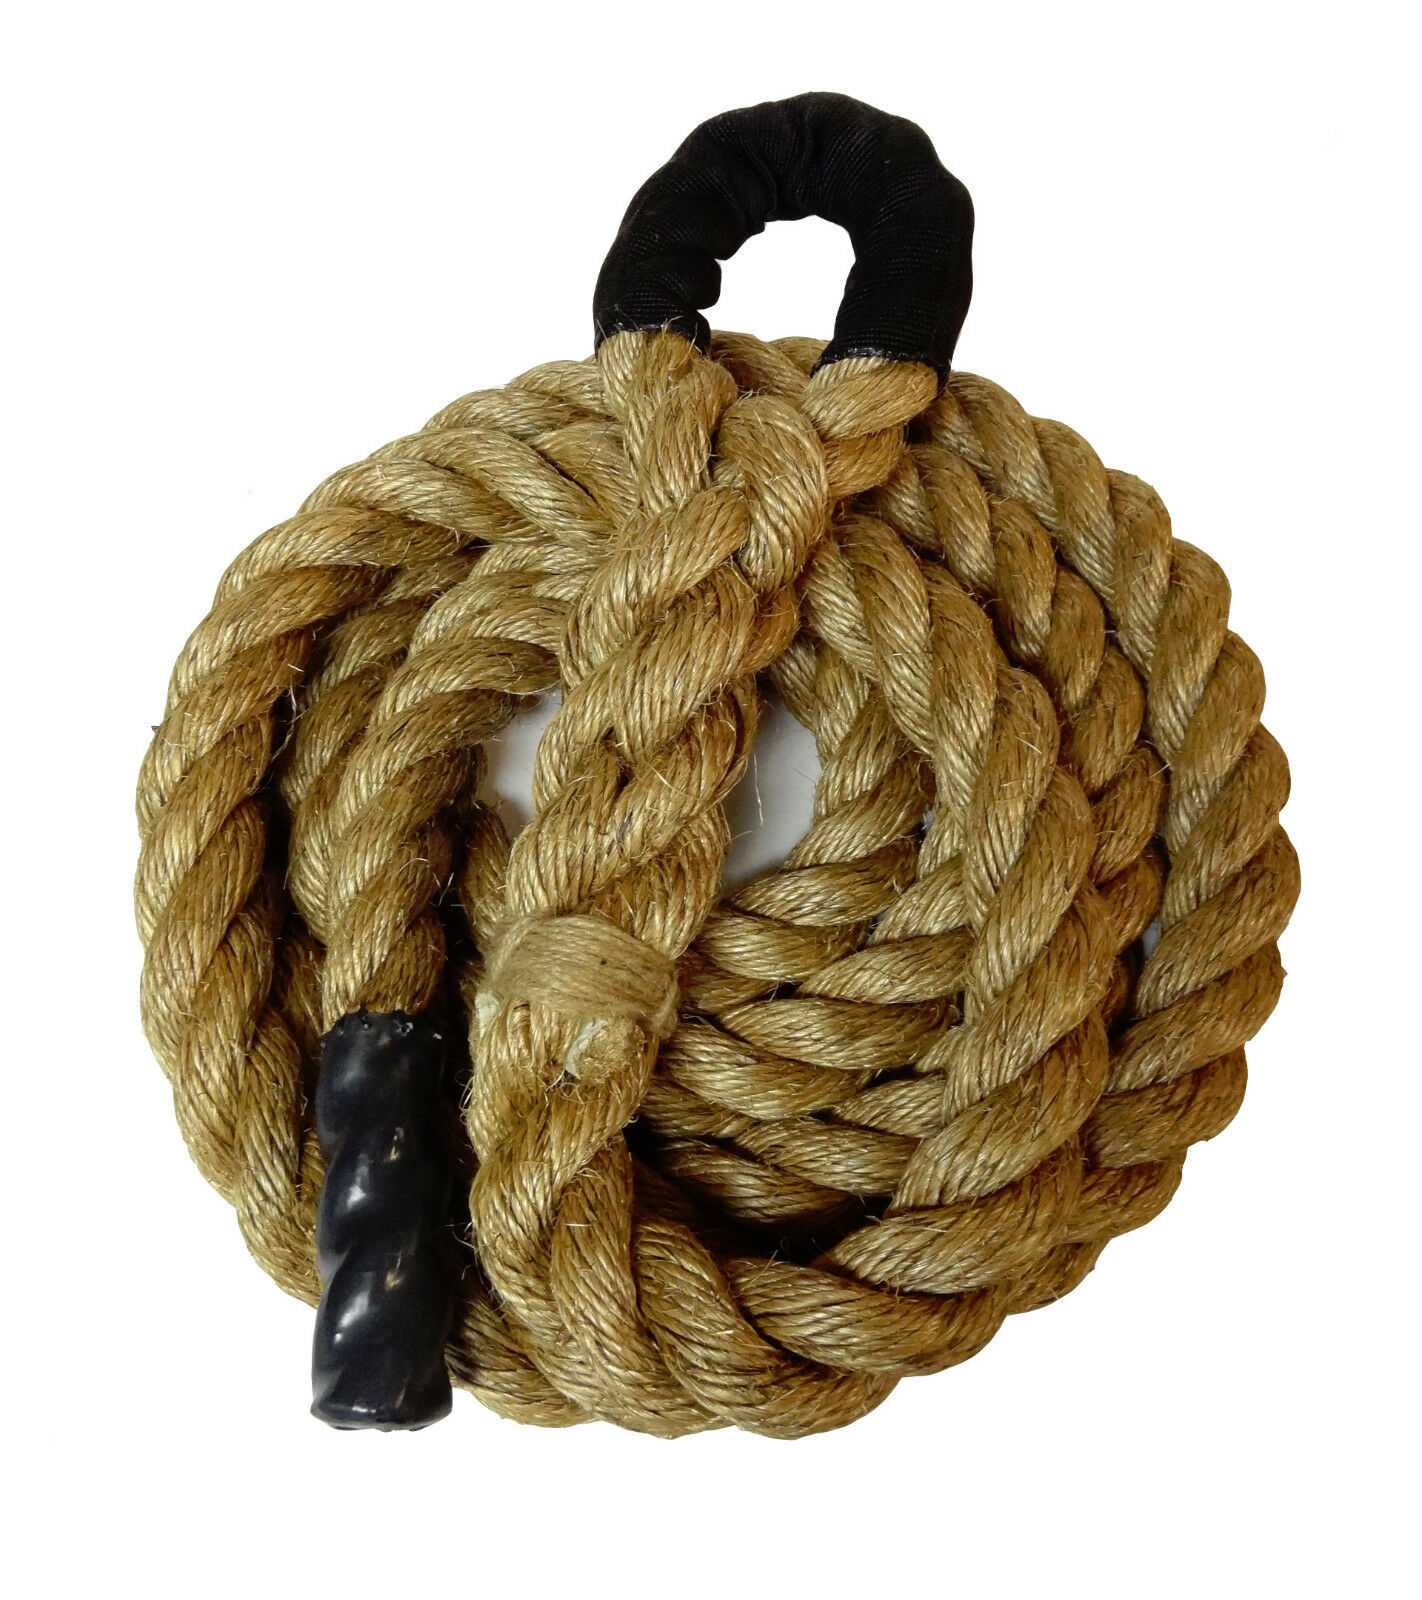 CFF Manila 2  Climbing Rope w  Predective Sleeve - 20'